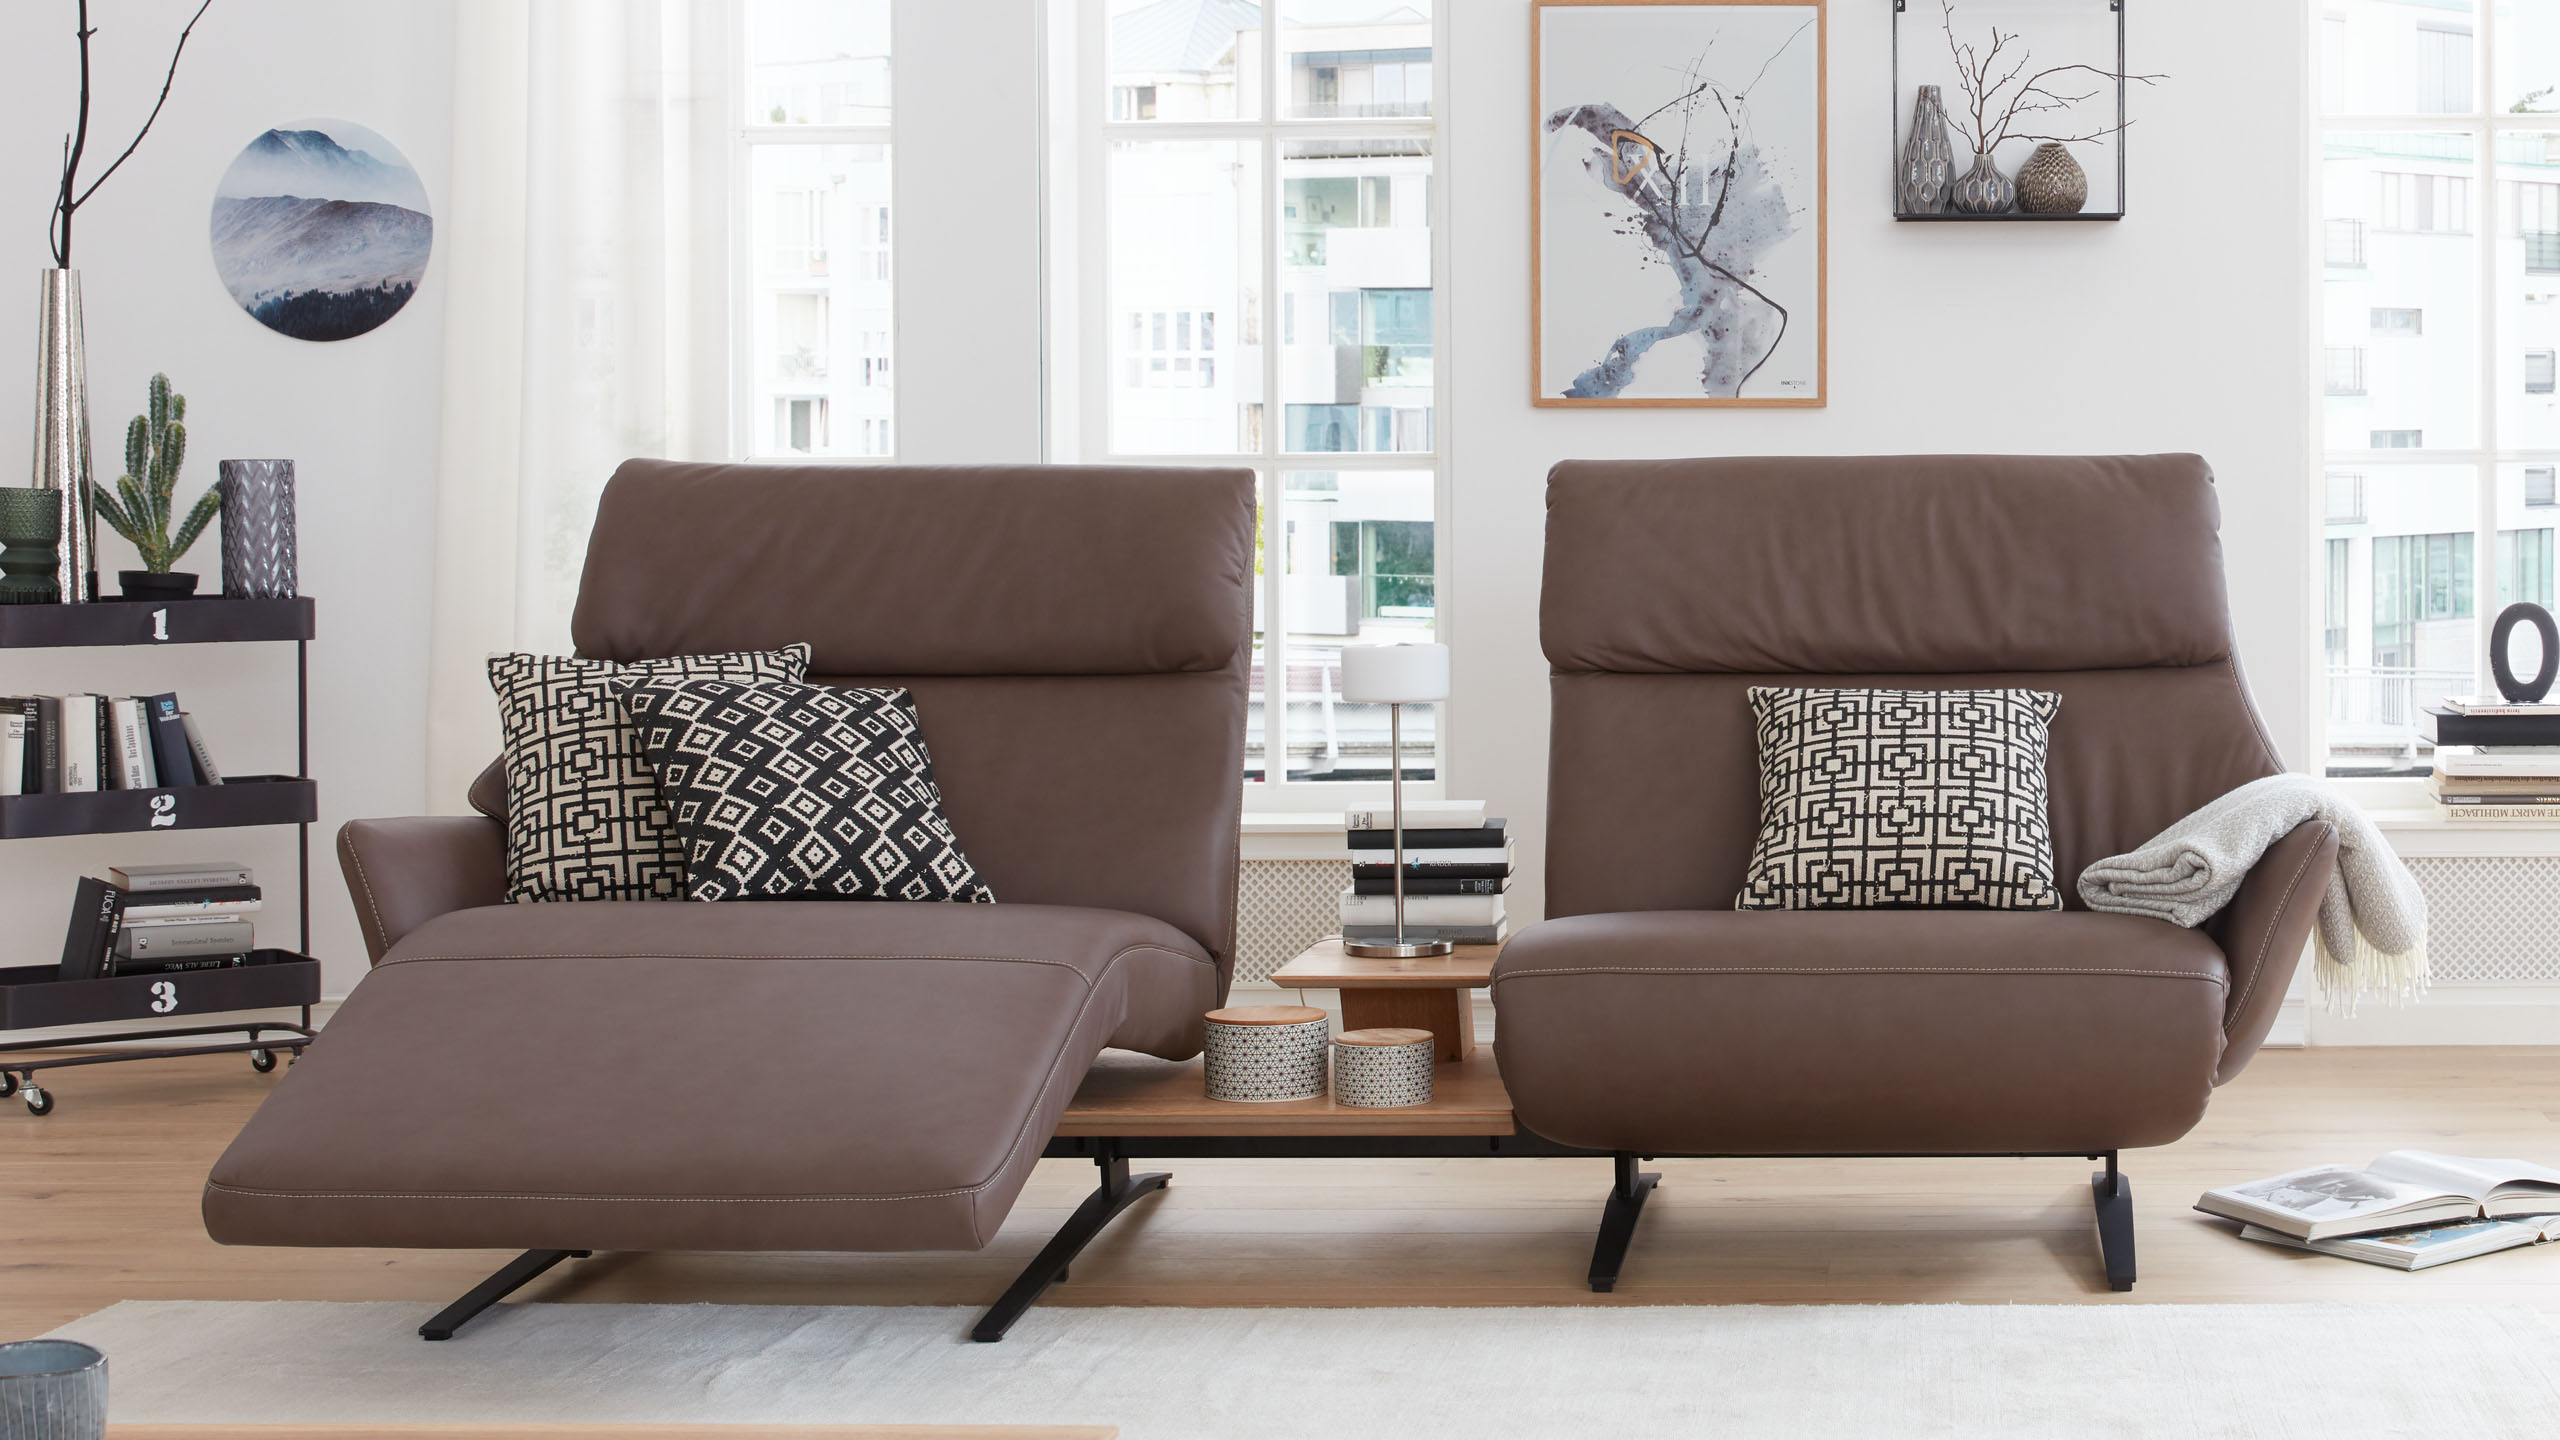 Interliving Sofa Serie 4230 Interliving